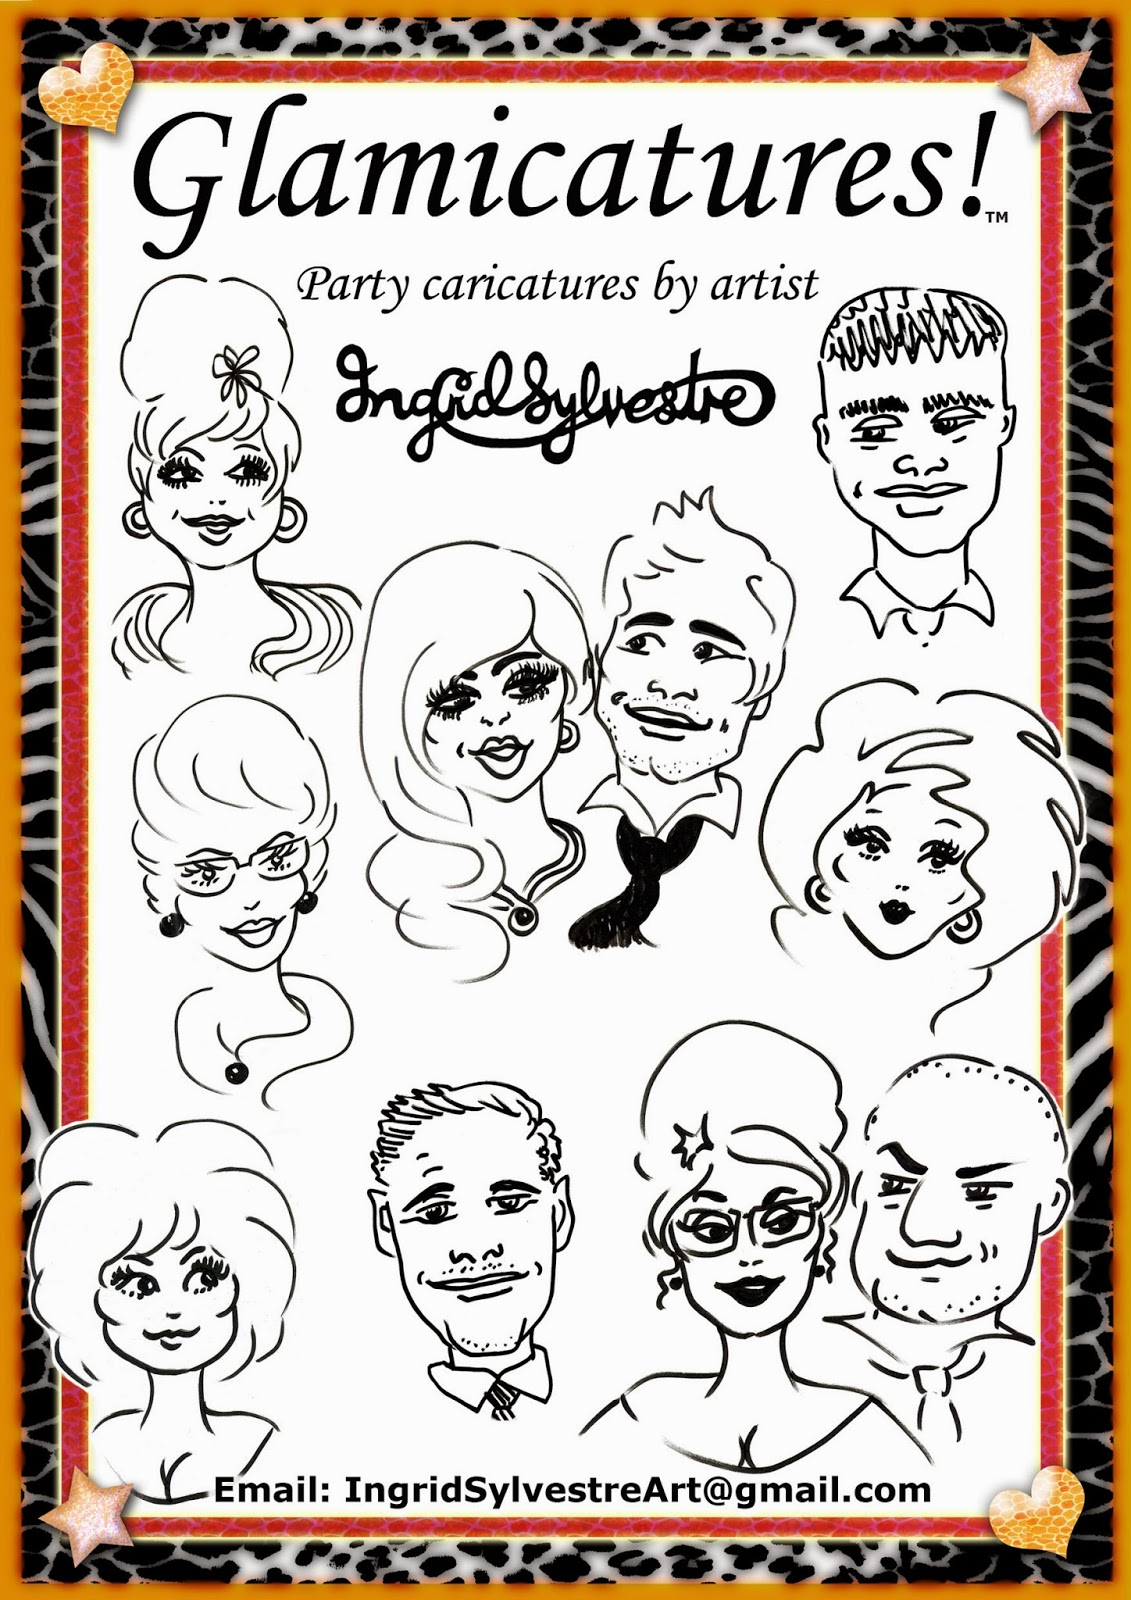 Wedding entertainment North East corporate events party caricatures proms caricatures by UK caricaturist Ingrid Sylvestre, Durham wedding entertainment Newcastle Teesside Northumberland Yorkshire